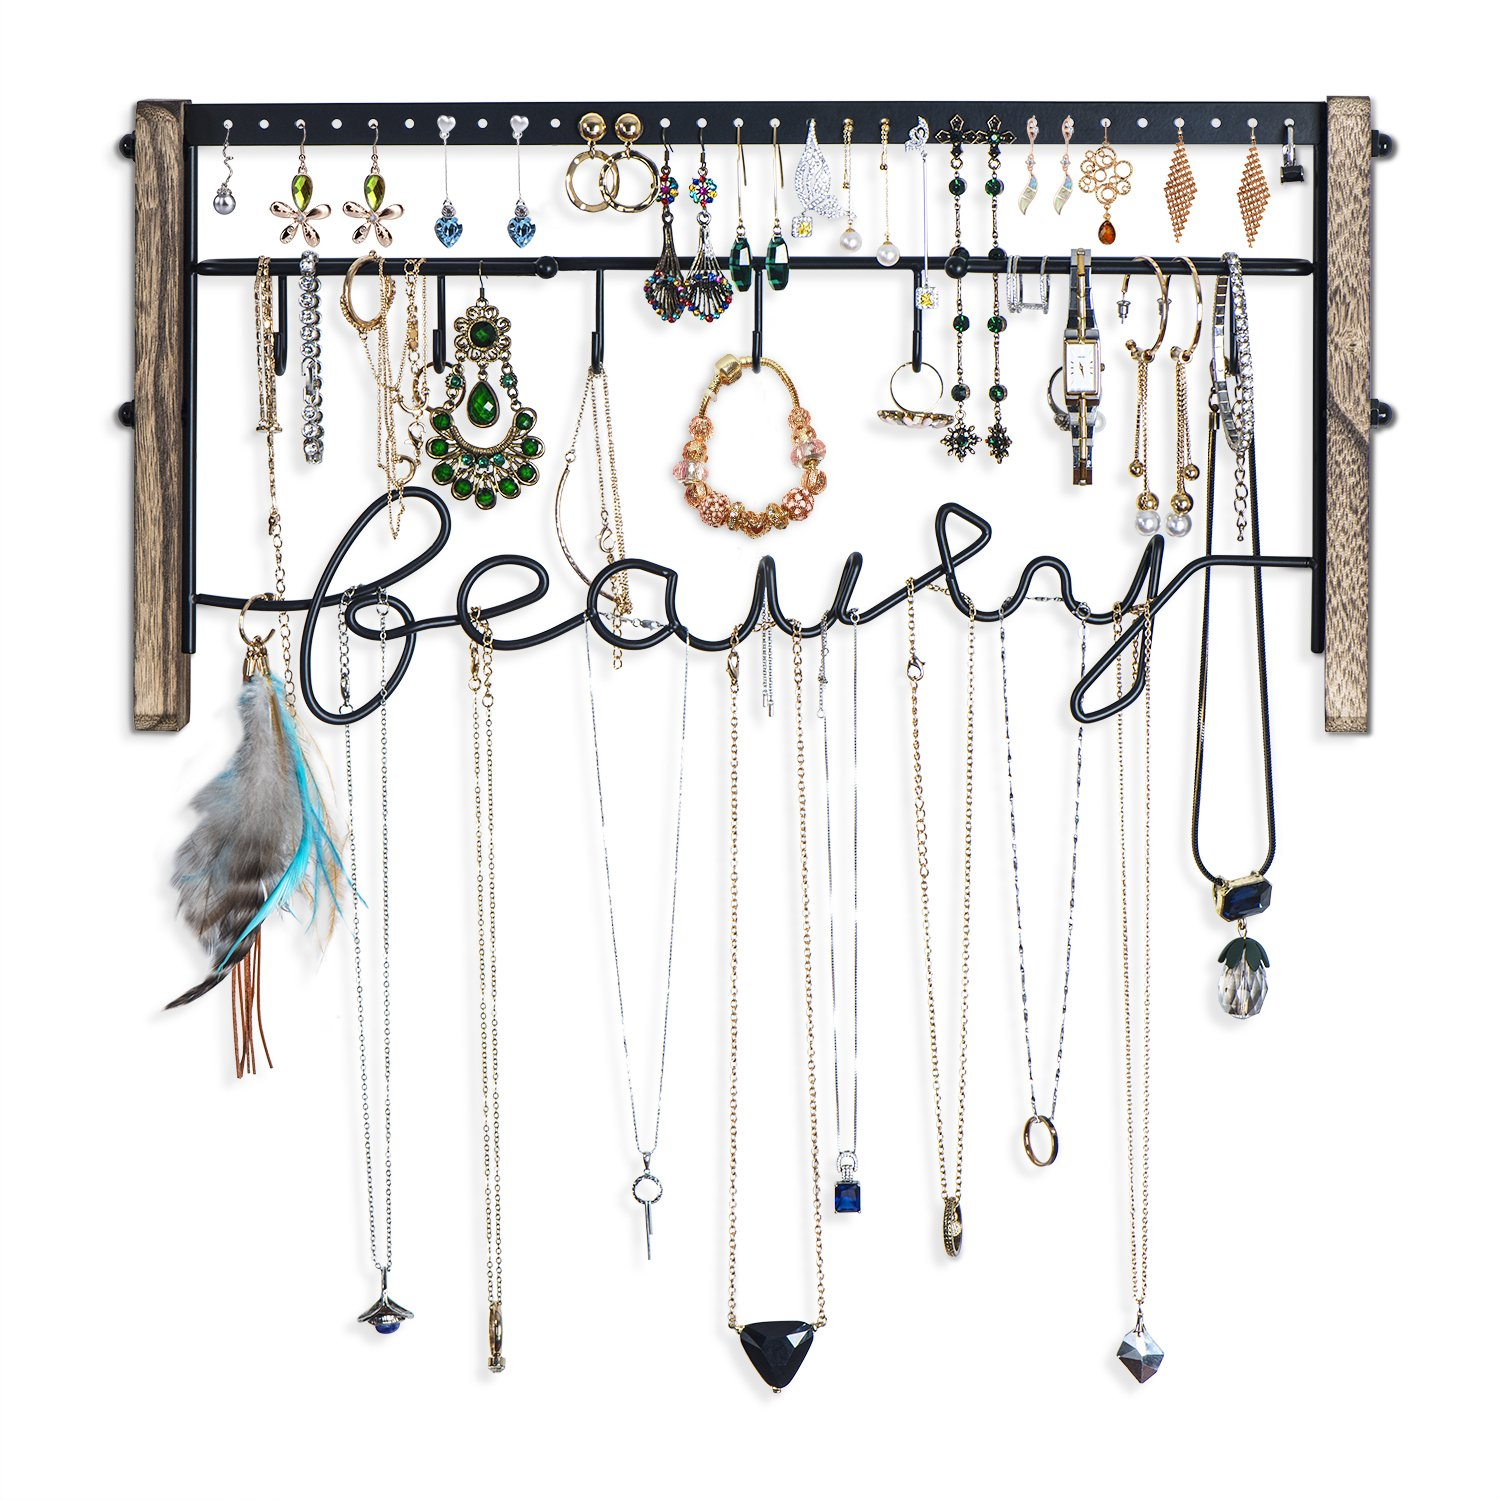 Love-KANKEI Jewelry Organizer Wall Mount - Black Metal & Rustic Wood Necklace Organizer Holder for Earrings Rings Bracelets and Necklaces by Love-KANKEI (Image #5)